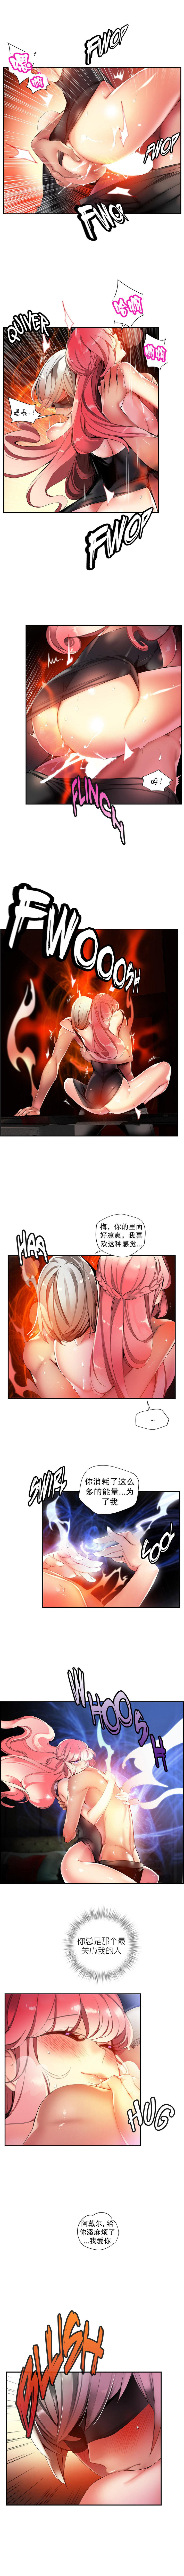 Lilith`s Cord   莉莉丝的脐带 Ch.1-37 528